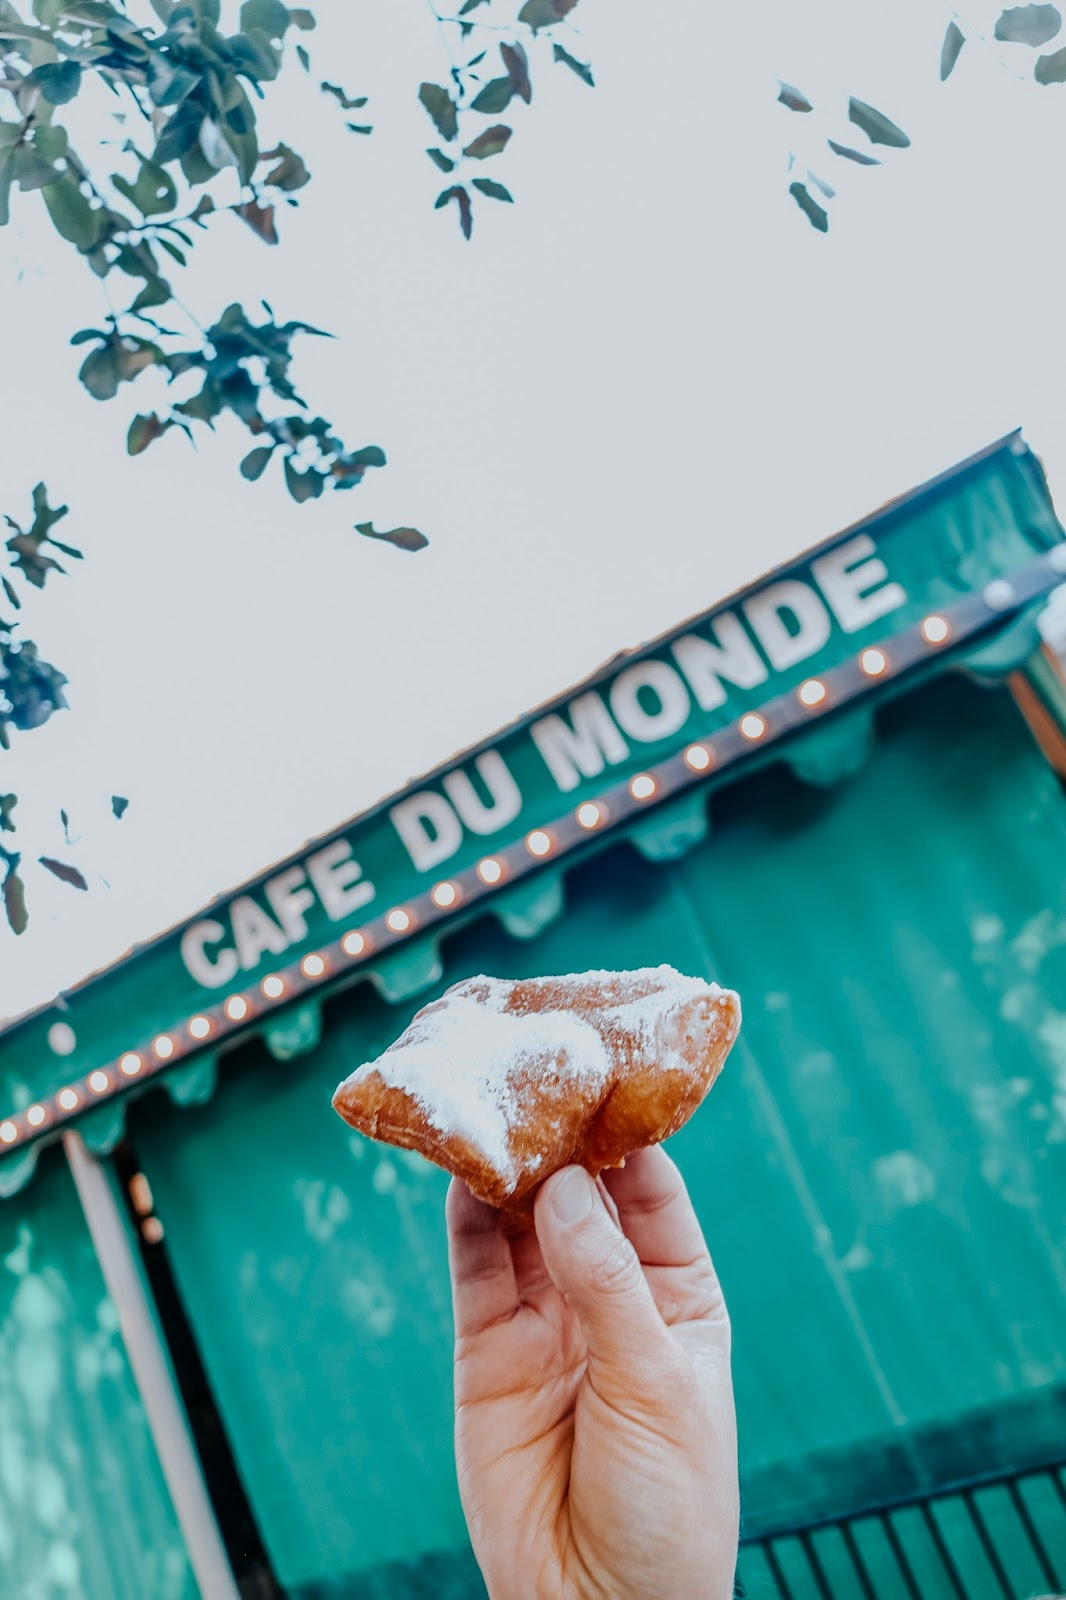 To go beignets at Cafe du Monde in New Orleans